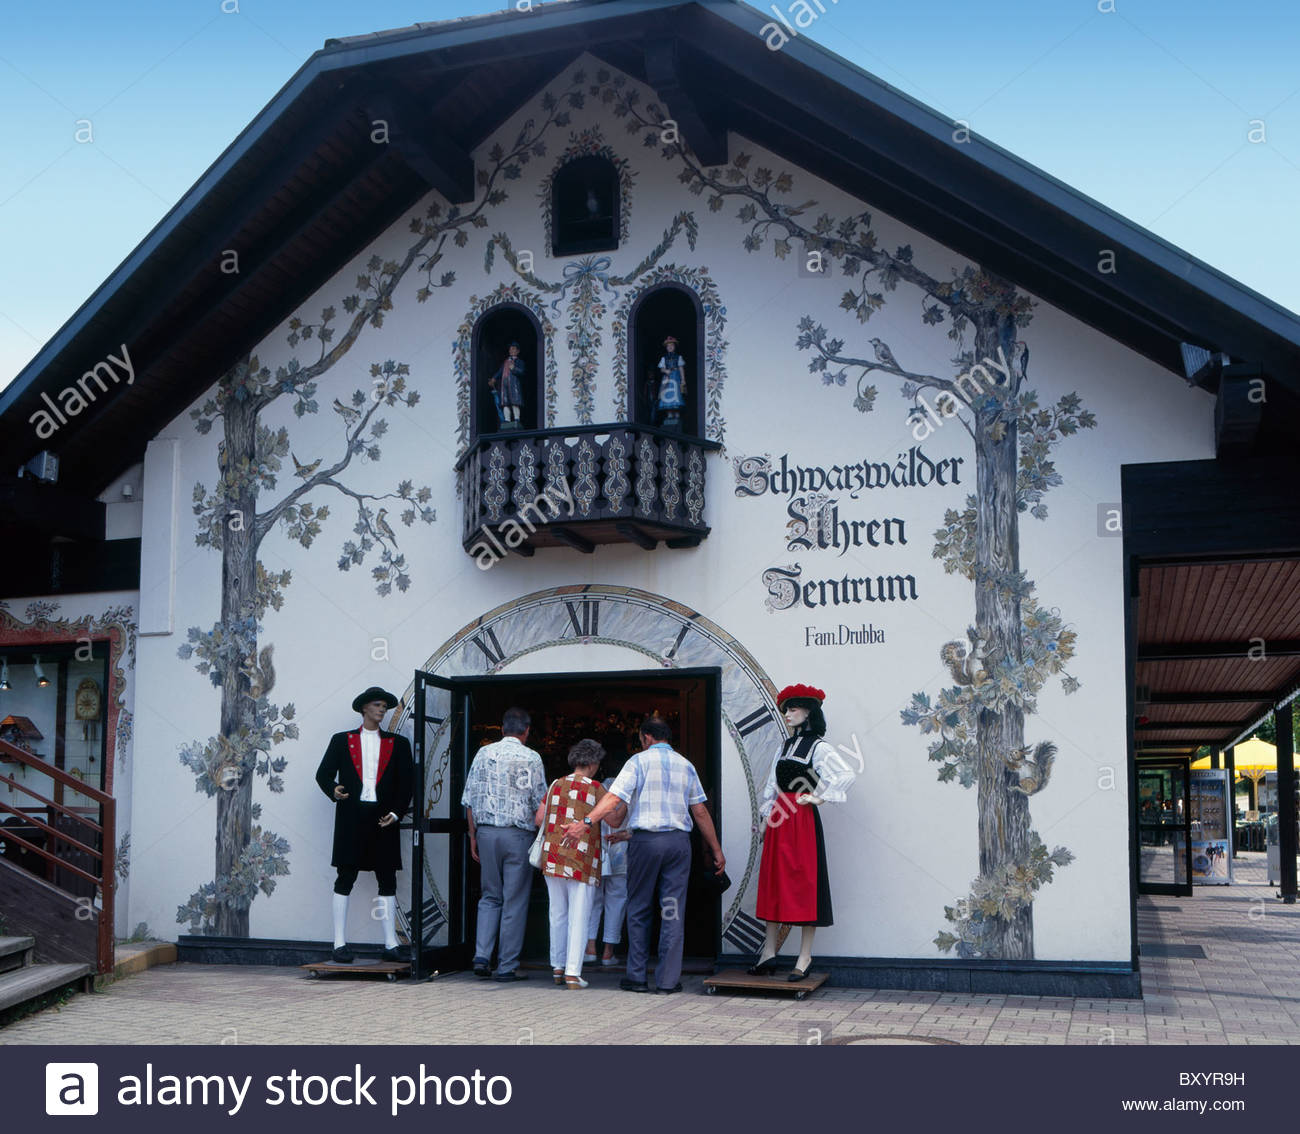 Uhren Museum The Black Forest, Titisee, Black Forest, Drubba clock museum, Germany Stock Photo ...